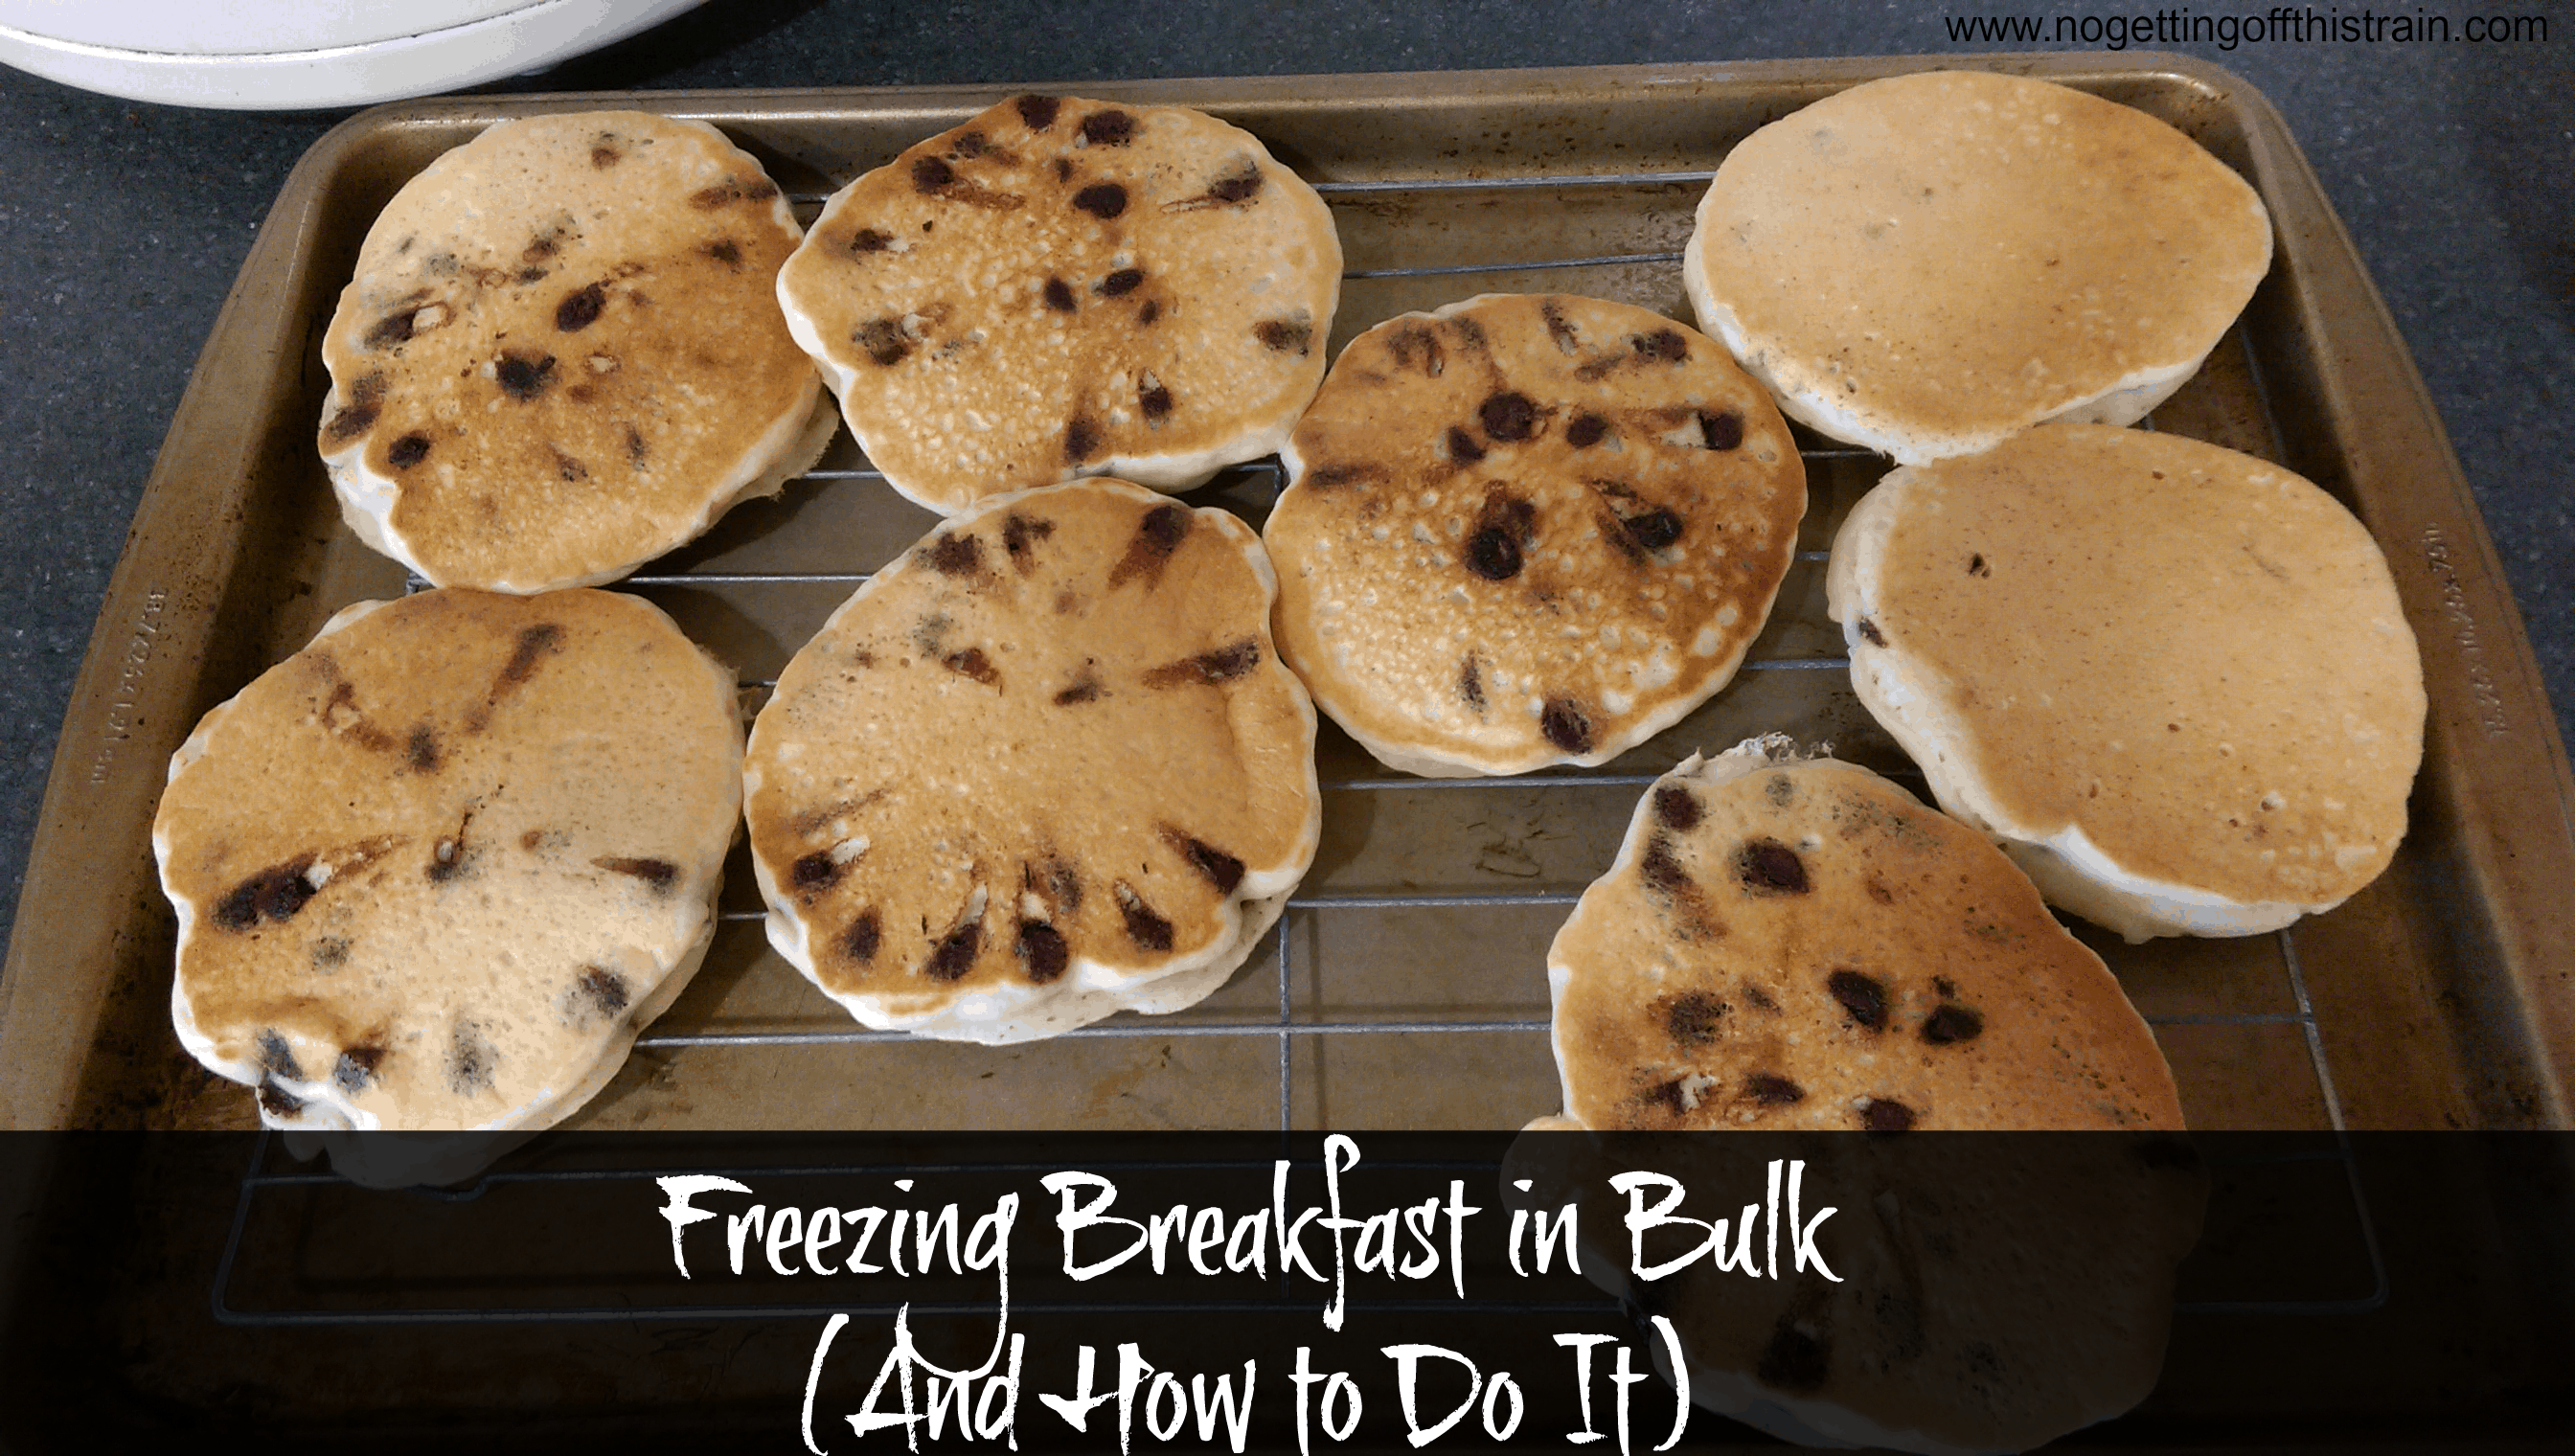 Freezing Breakfast in Bulk and How to Do It